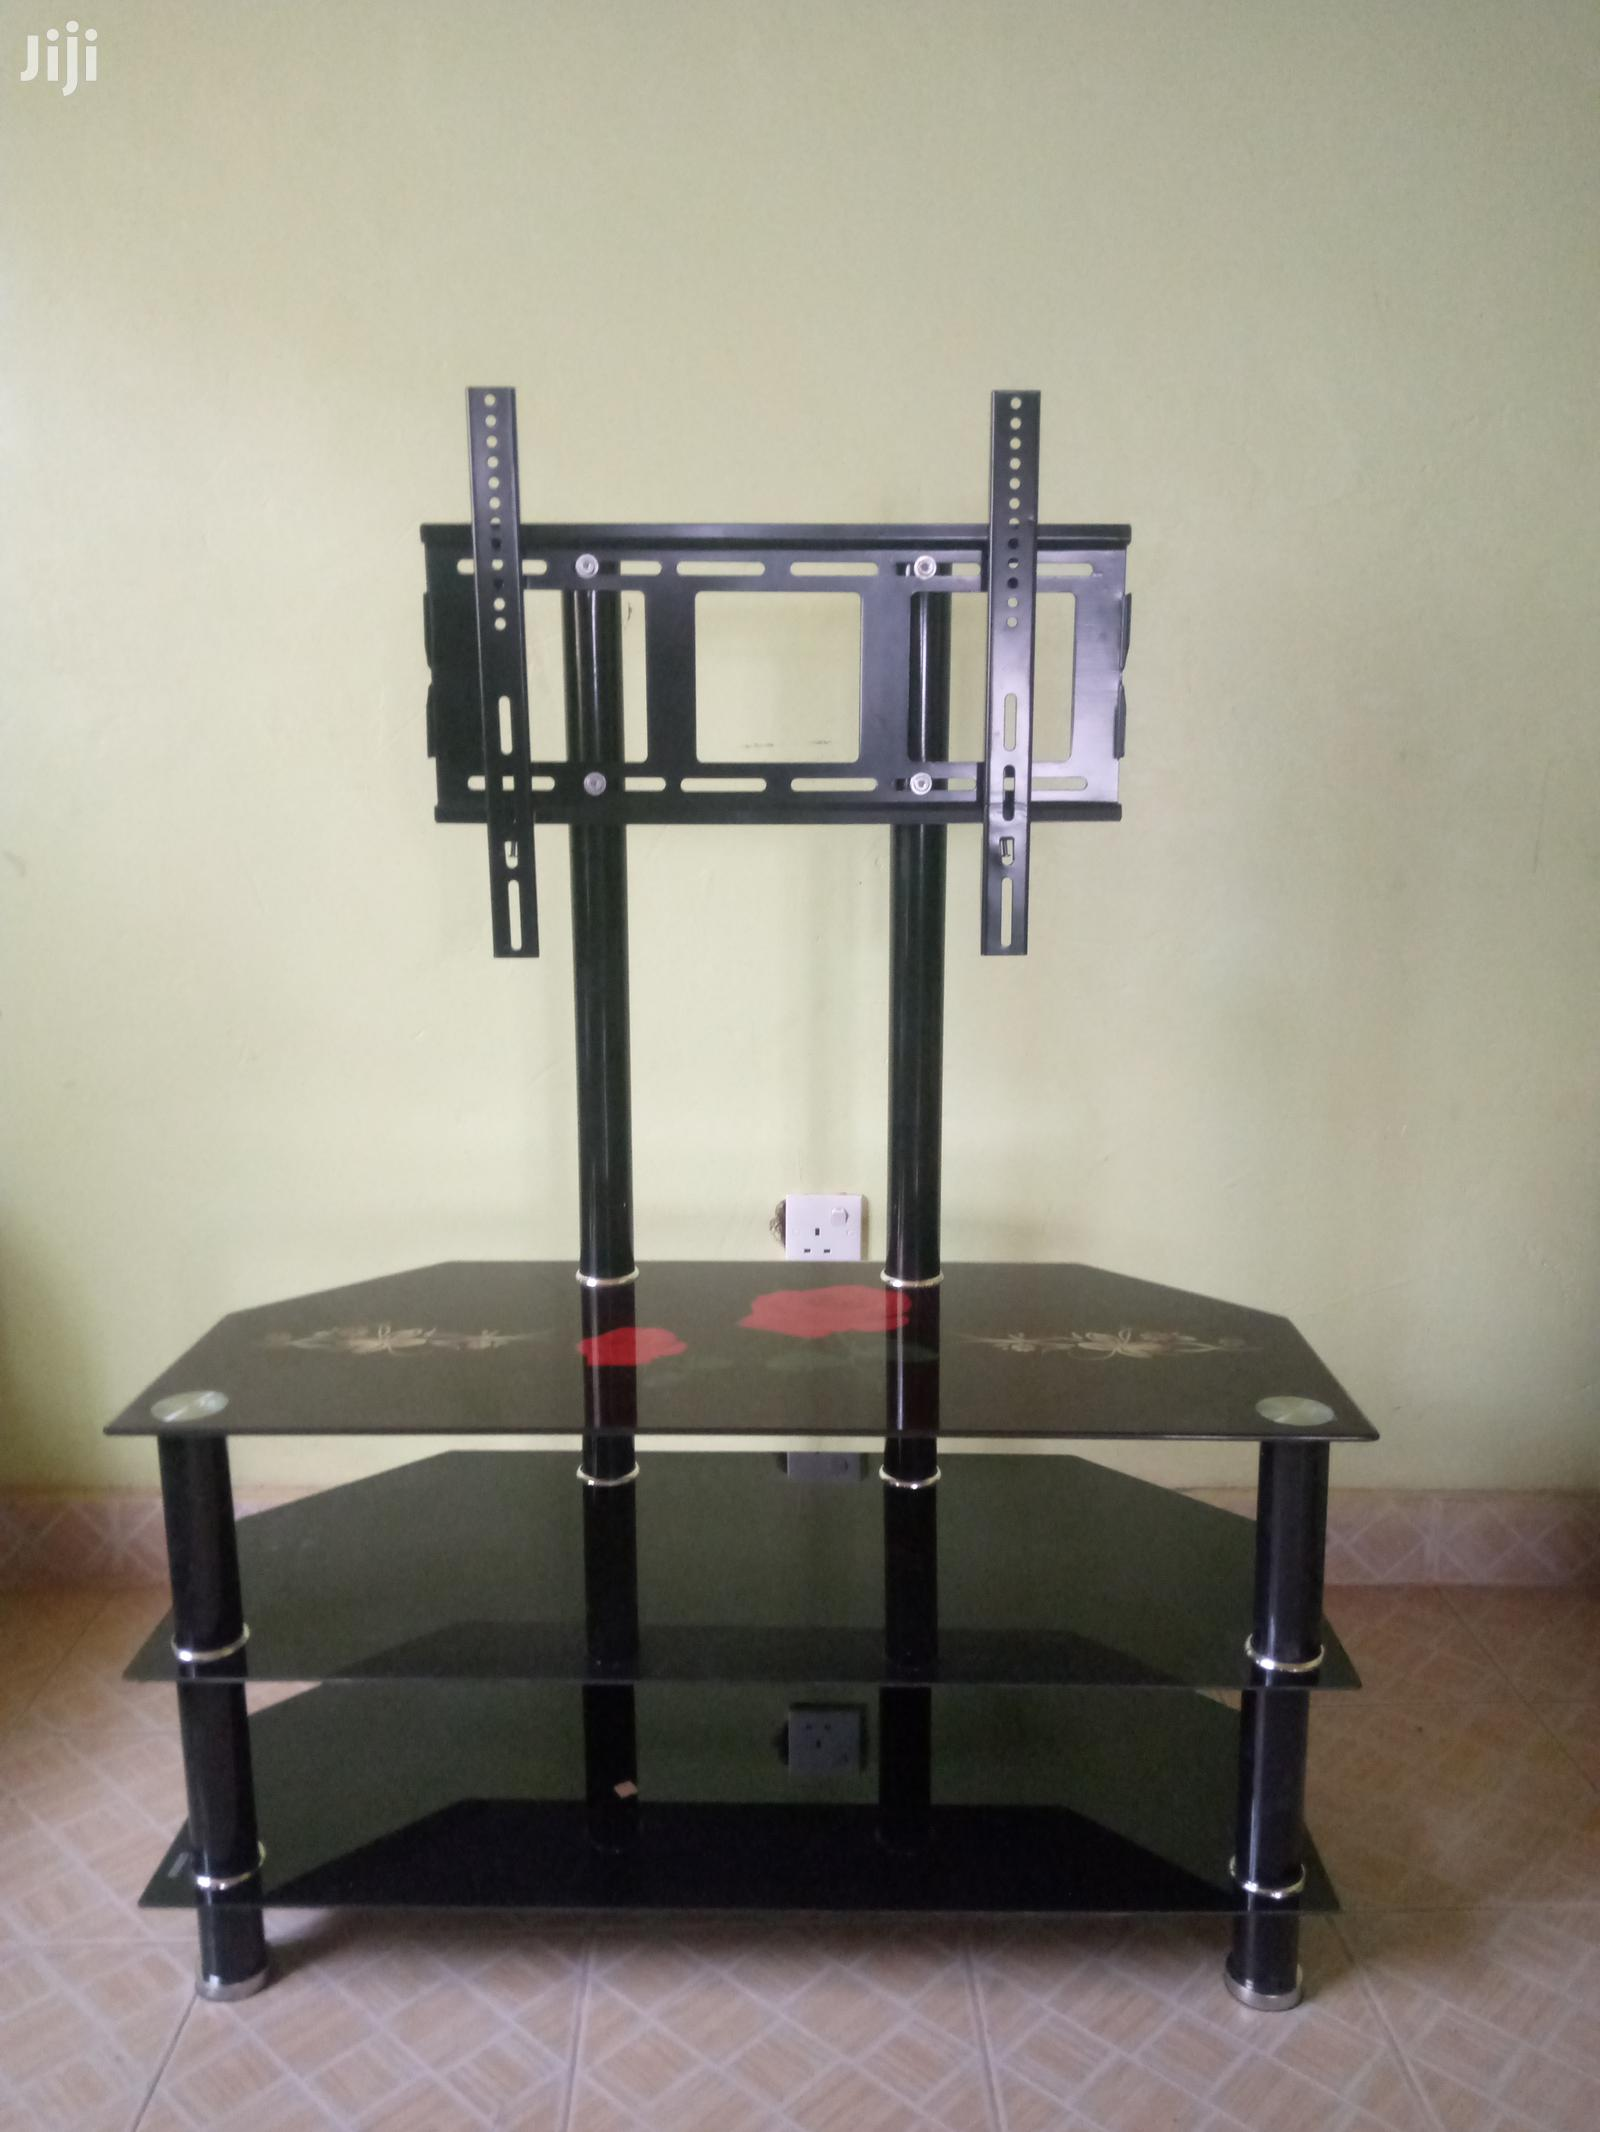 Imported Glass TV Stand Printed Design Shelves | Furniture for sale in Kahawa, Nairobi, Kenya